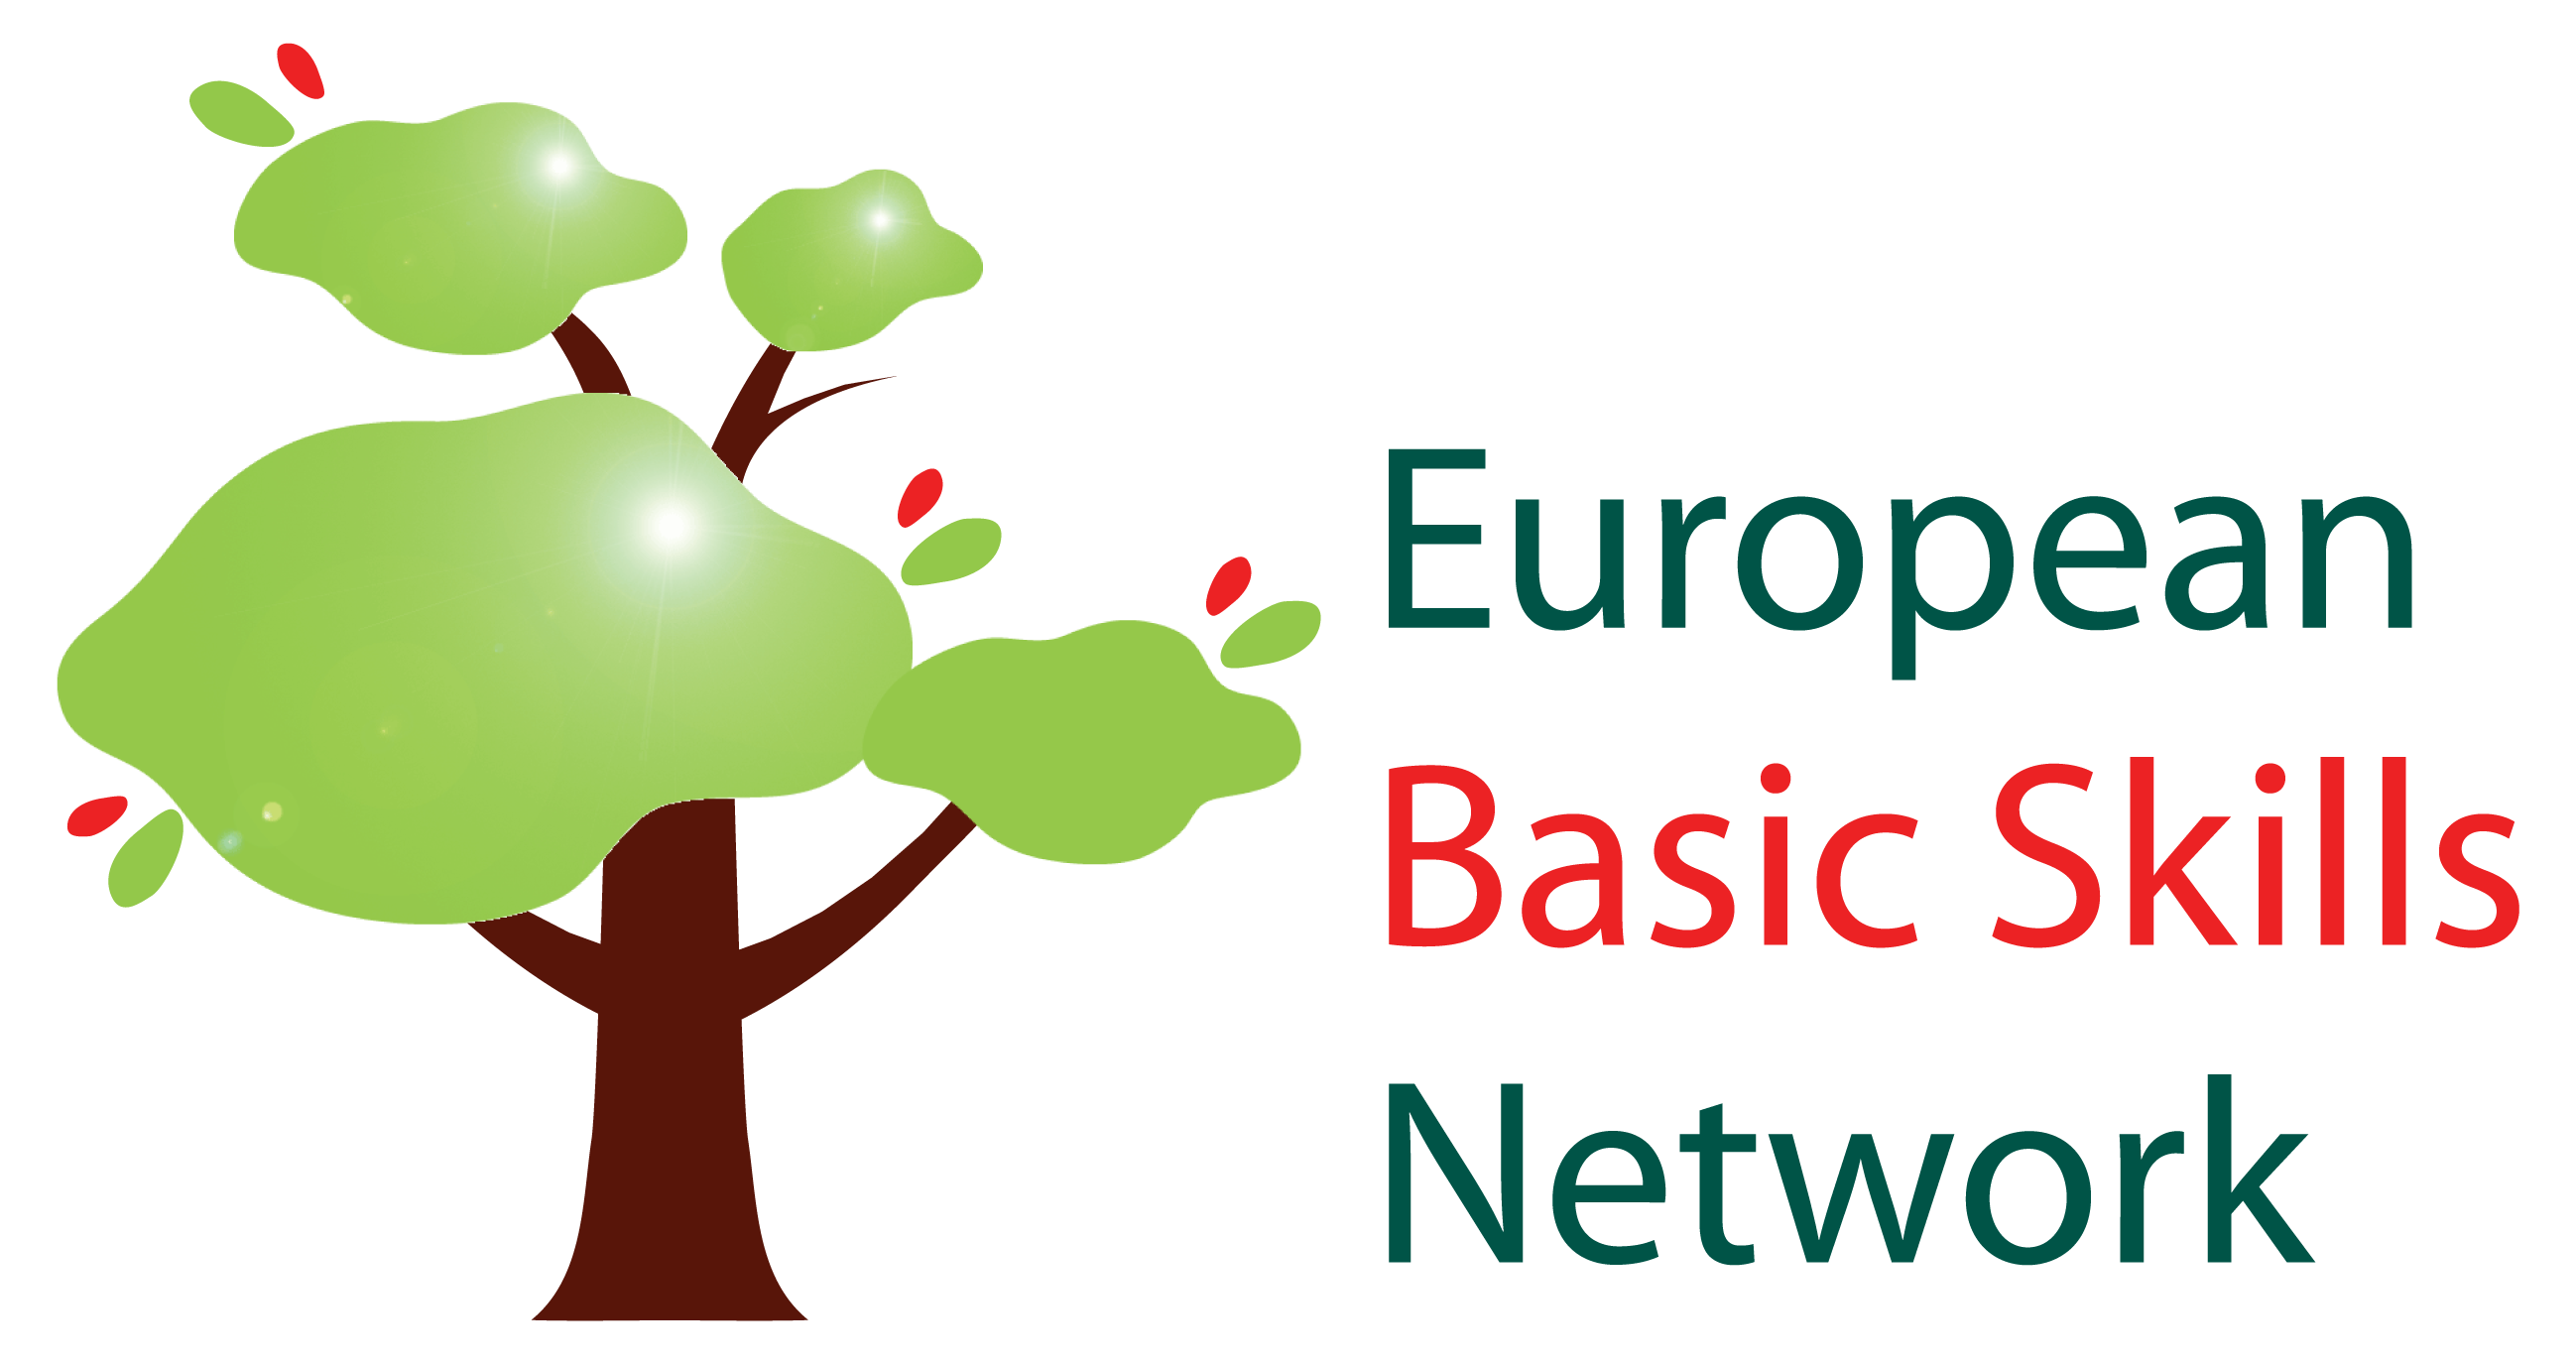 EBSN (European Basic Skills Network)